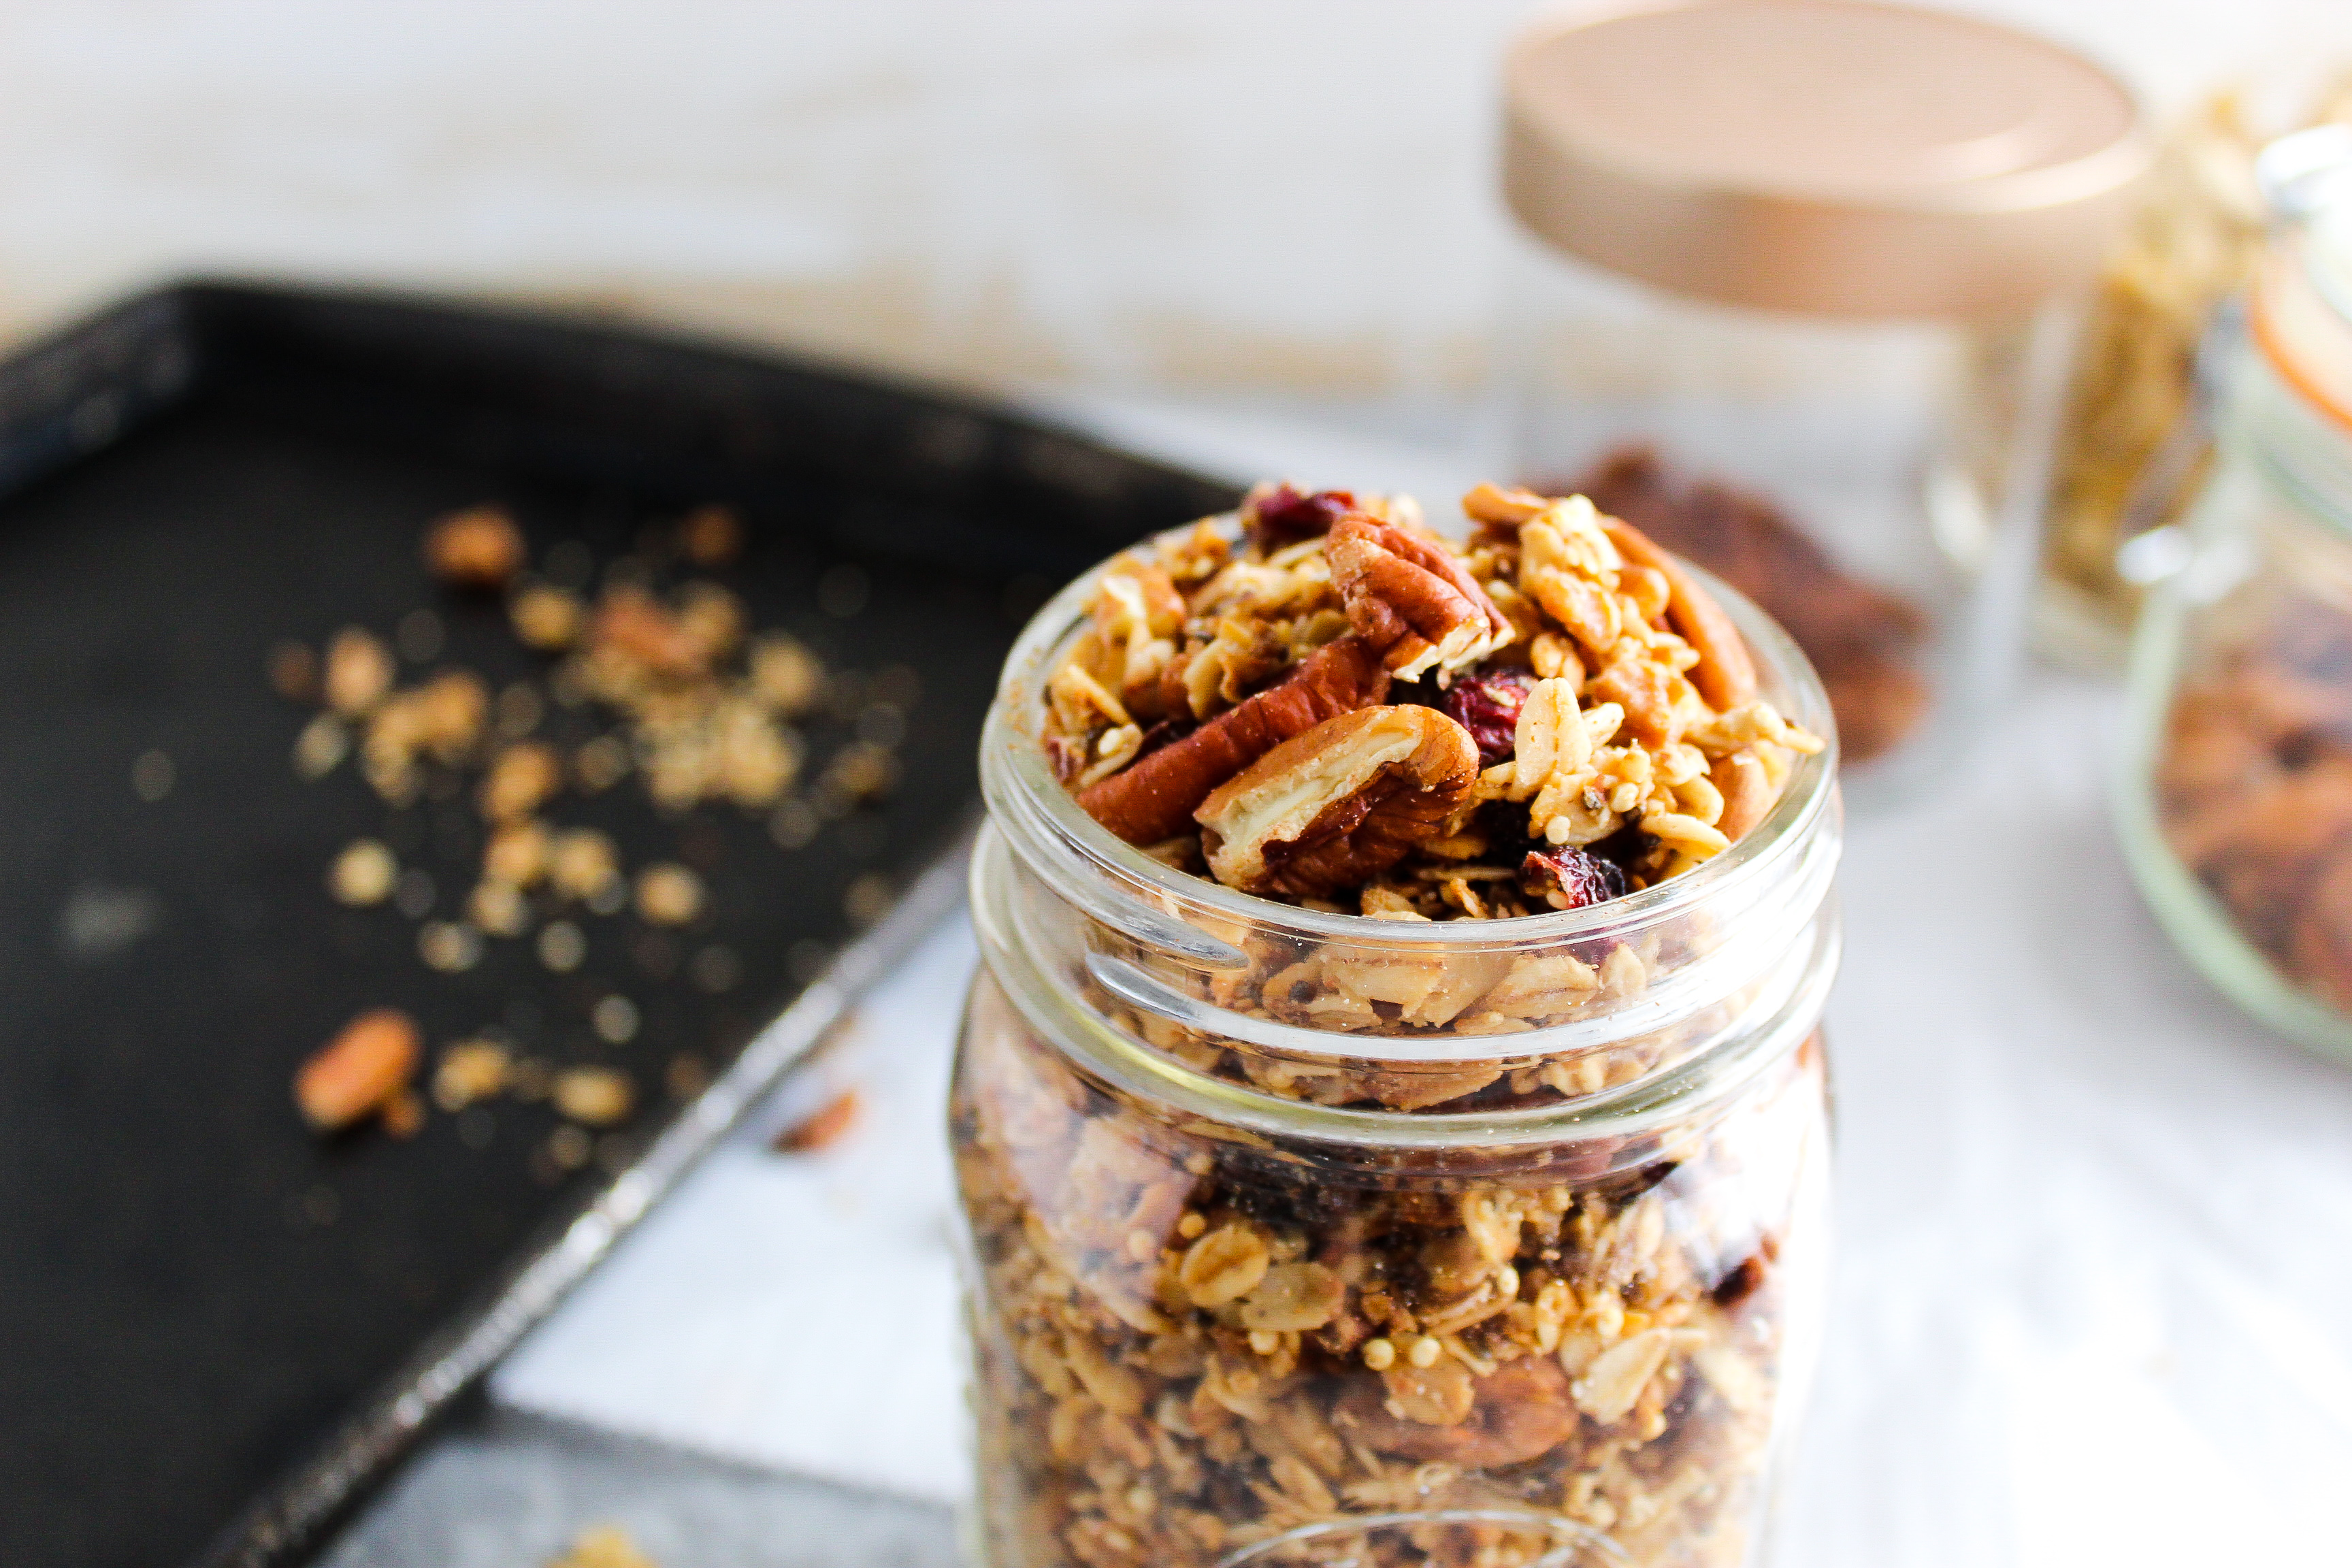 When it comes to physical activity like sports, hiking, backpacking, or working out– it's important to stay fueled appropriately. Try these healthy snacks like fruit, roasted, chickpeas, and more.